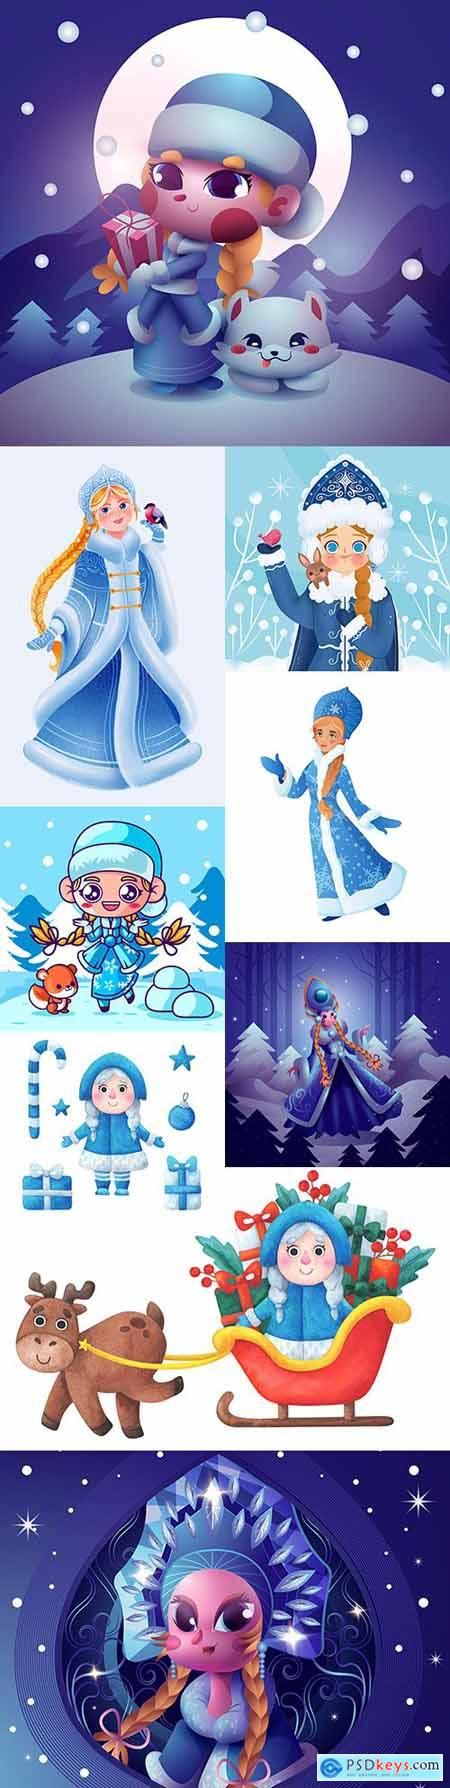 Cute fabulous character snow maiden Christmas illustrations